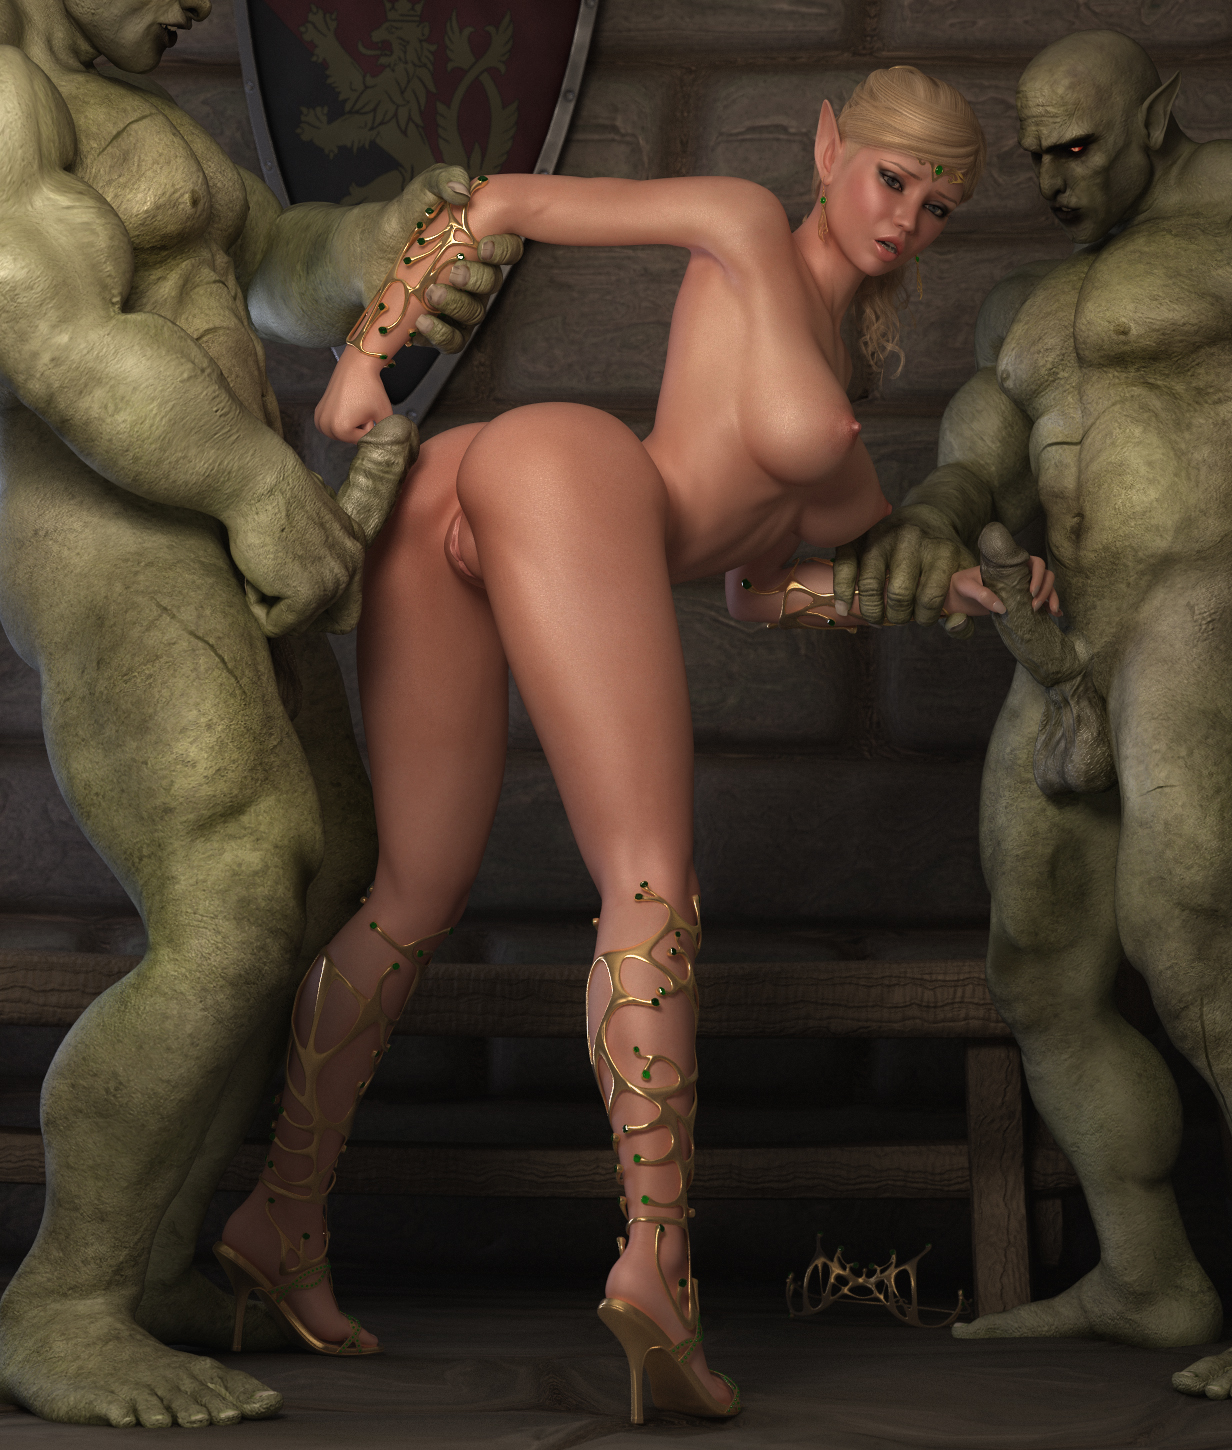 Monsters fucking elf girl porn pics cartoon video